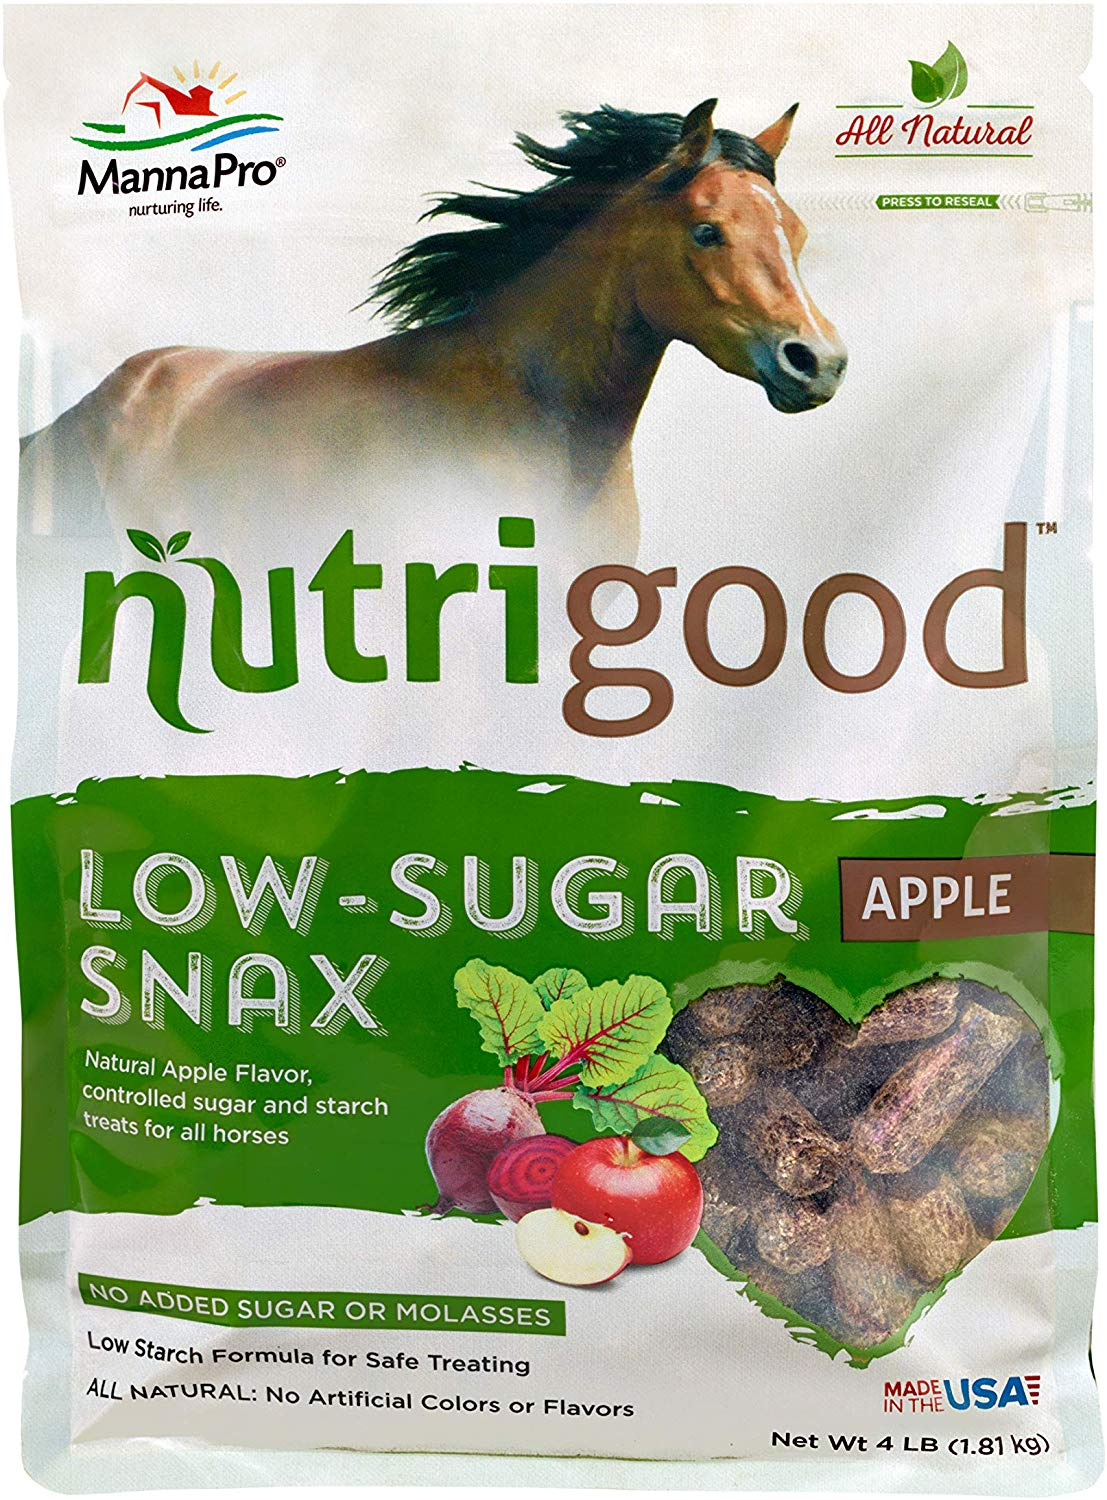 Manna Pro Nutrigood Low-Sugar Snax Apple Flavored Horse Treats, 4-lb